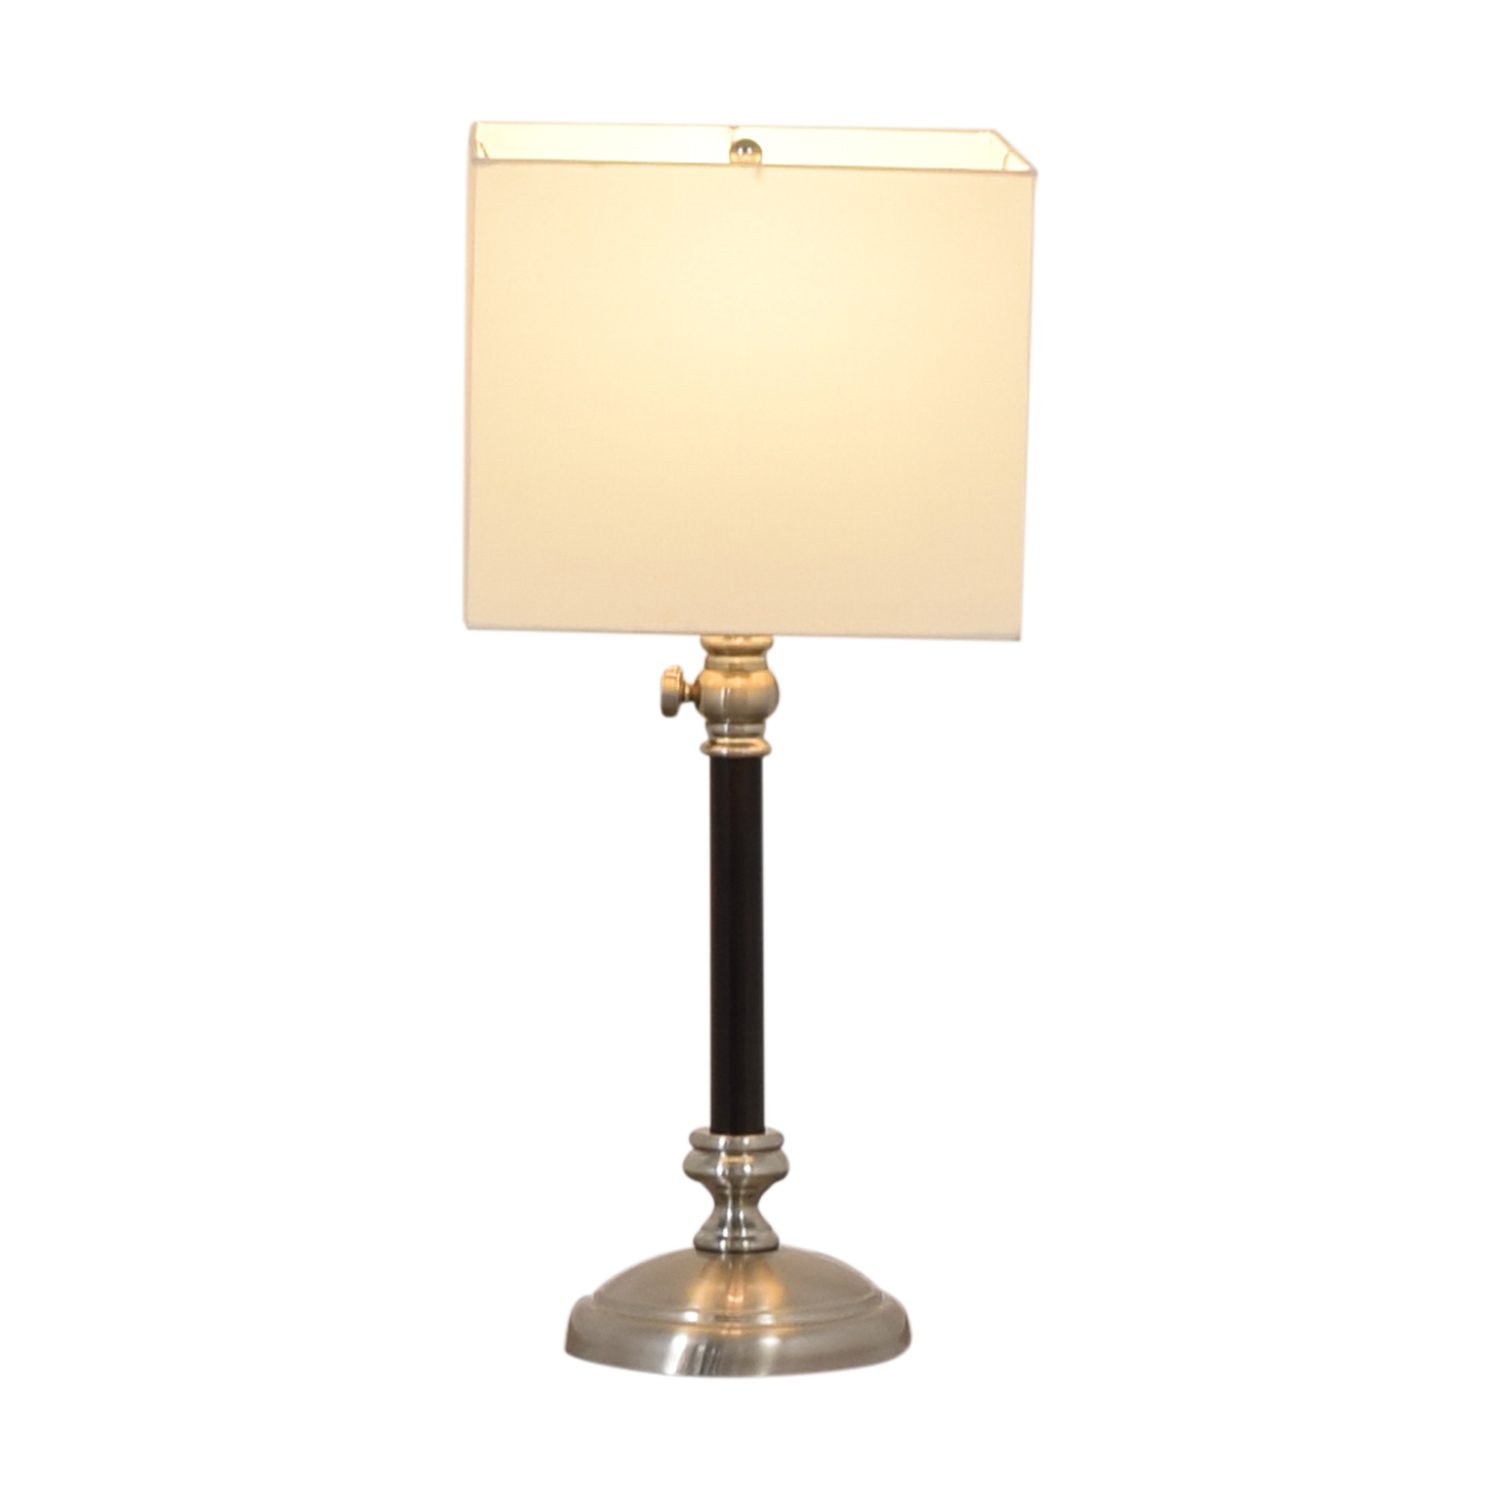 Black Table Accent Lamp second hand